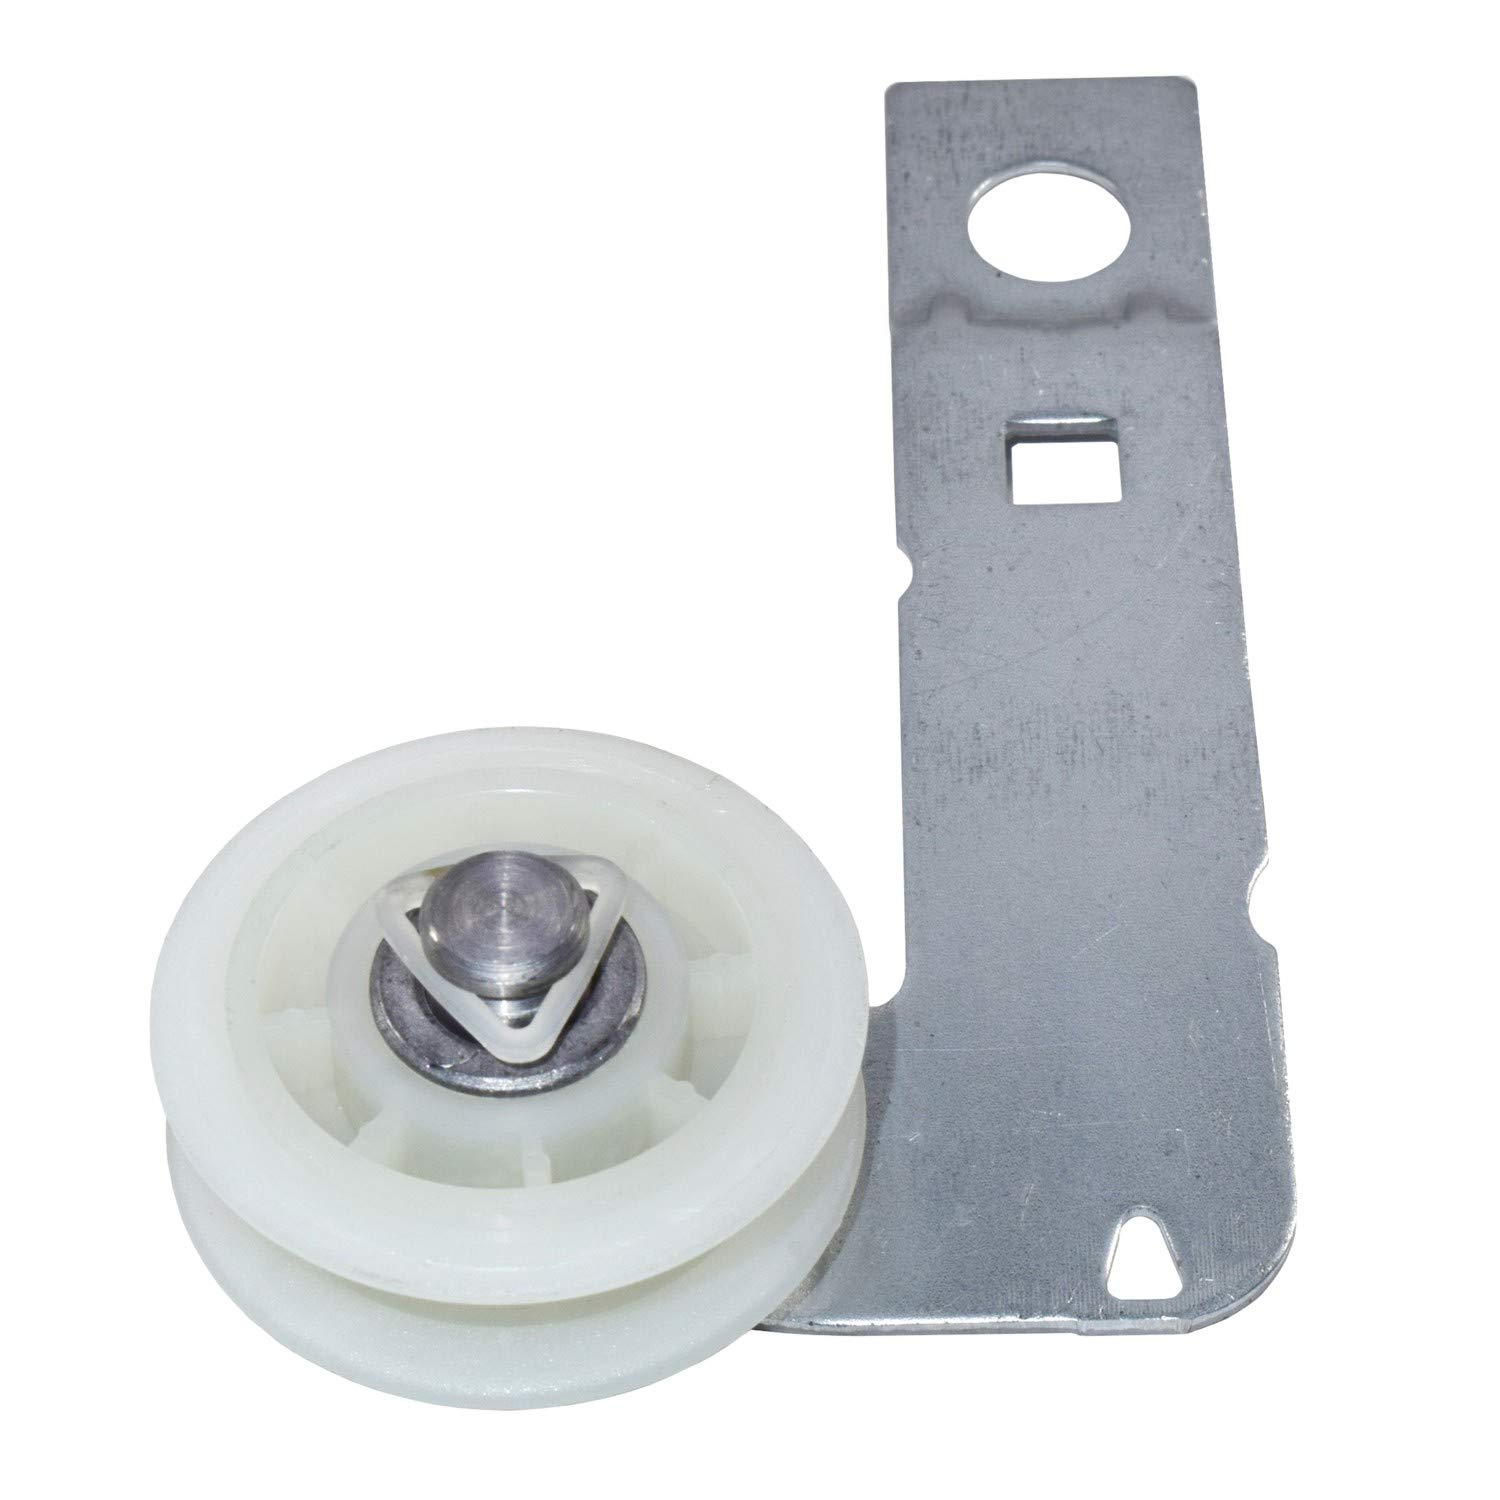 Dryer Idler Pulley For Whirlpool Kenmore W10837240 279640 W10547290 W10118756 US